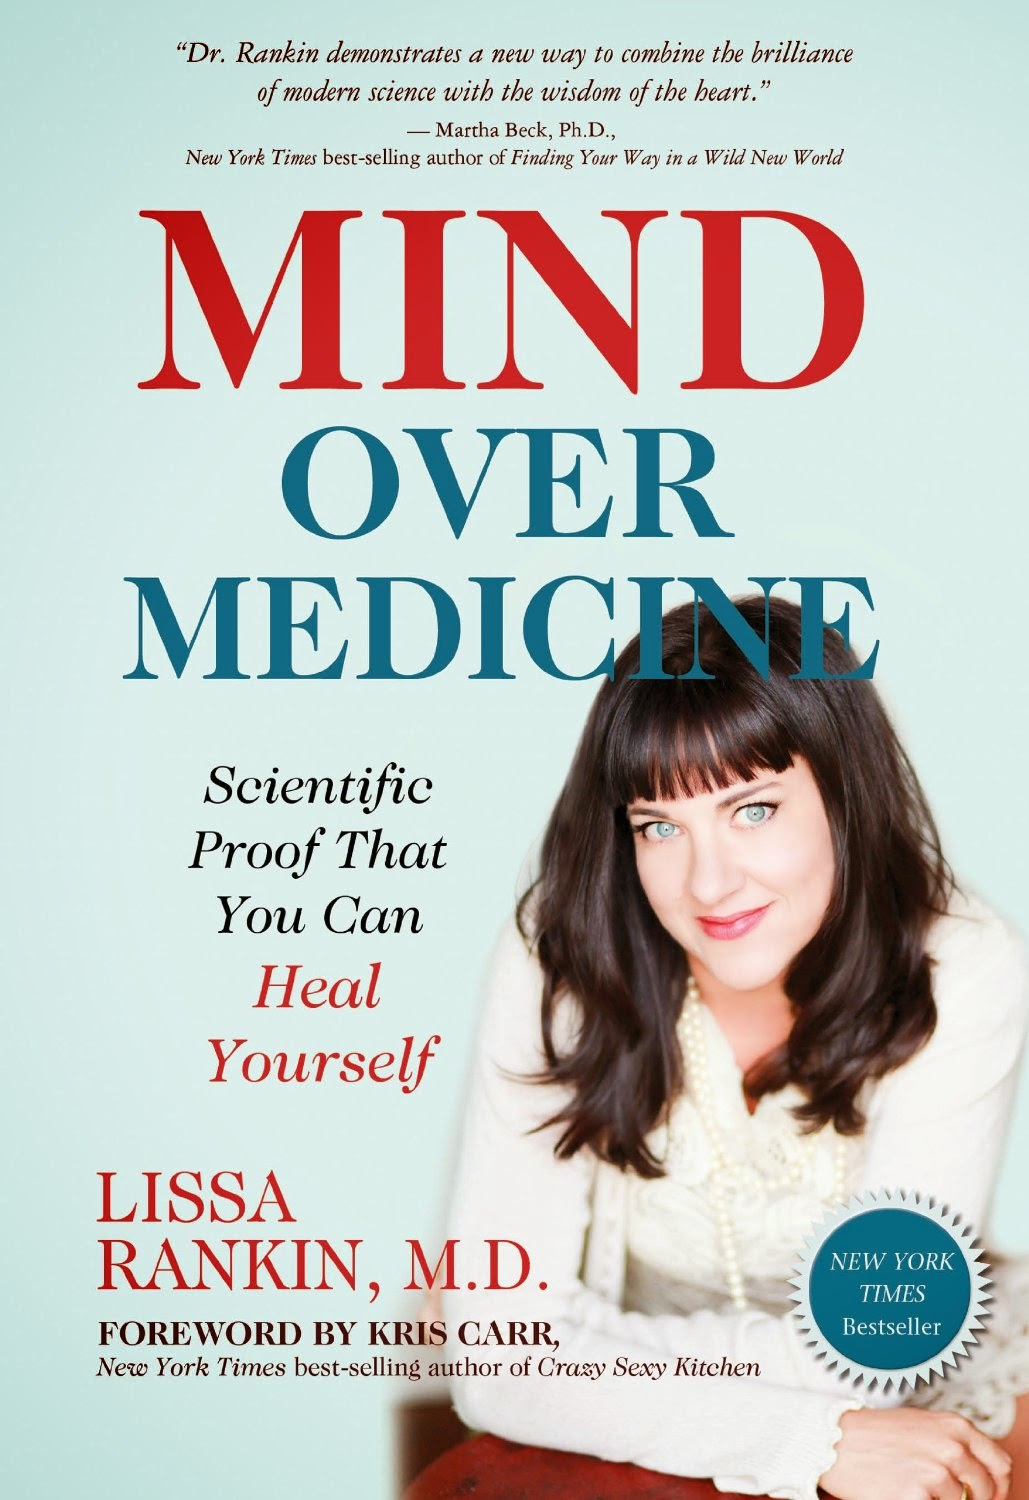 Mind Over Medicine by Lissa Rankin, MD